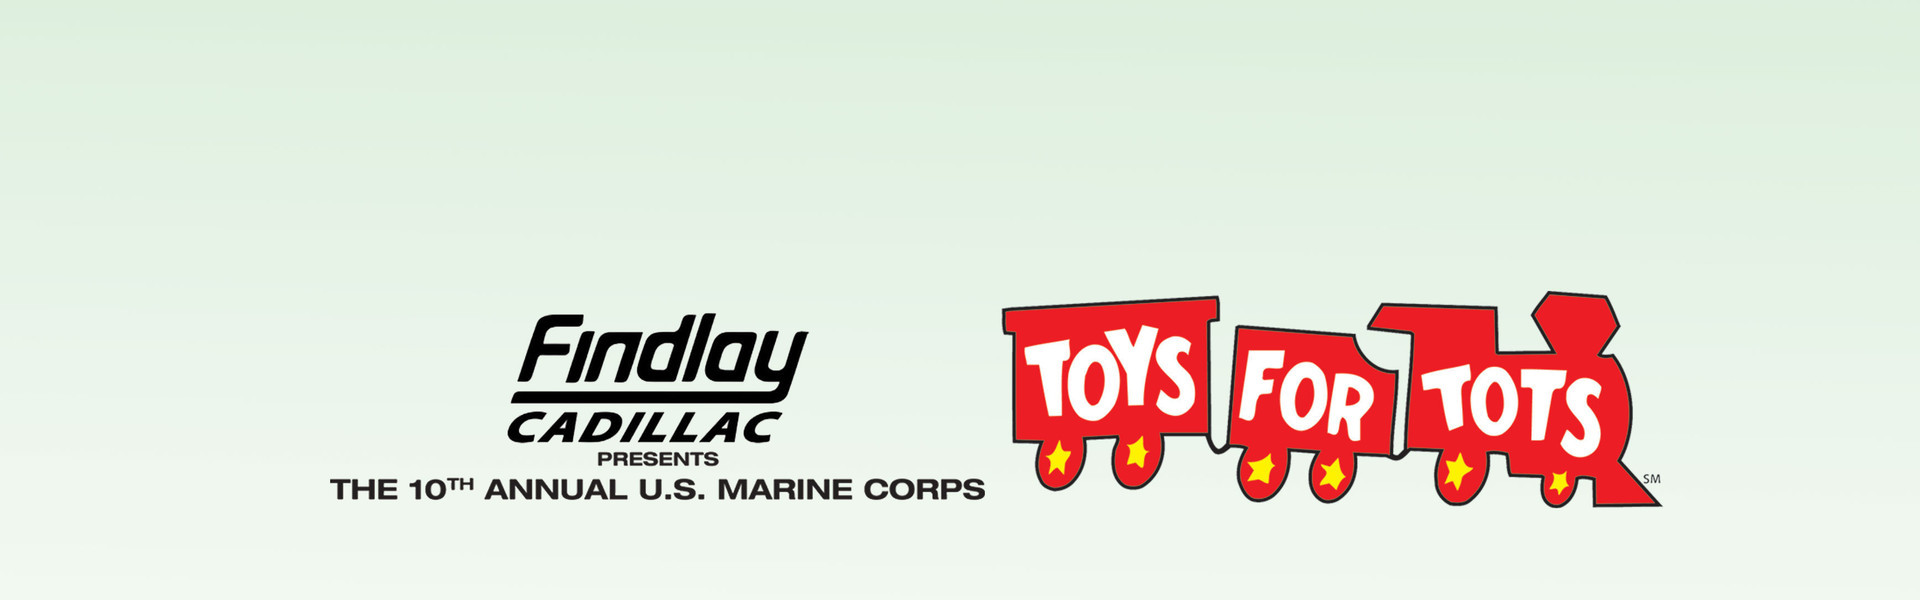 Toys 4 Tots Special Celebrity Event at Westgate Las Vegas Resort & Casino Presented by Findlay Cadillac